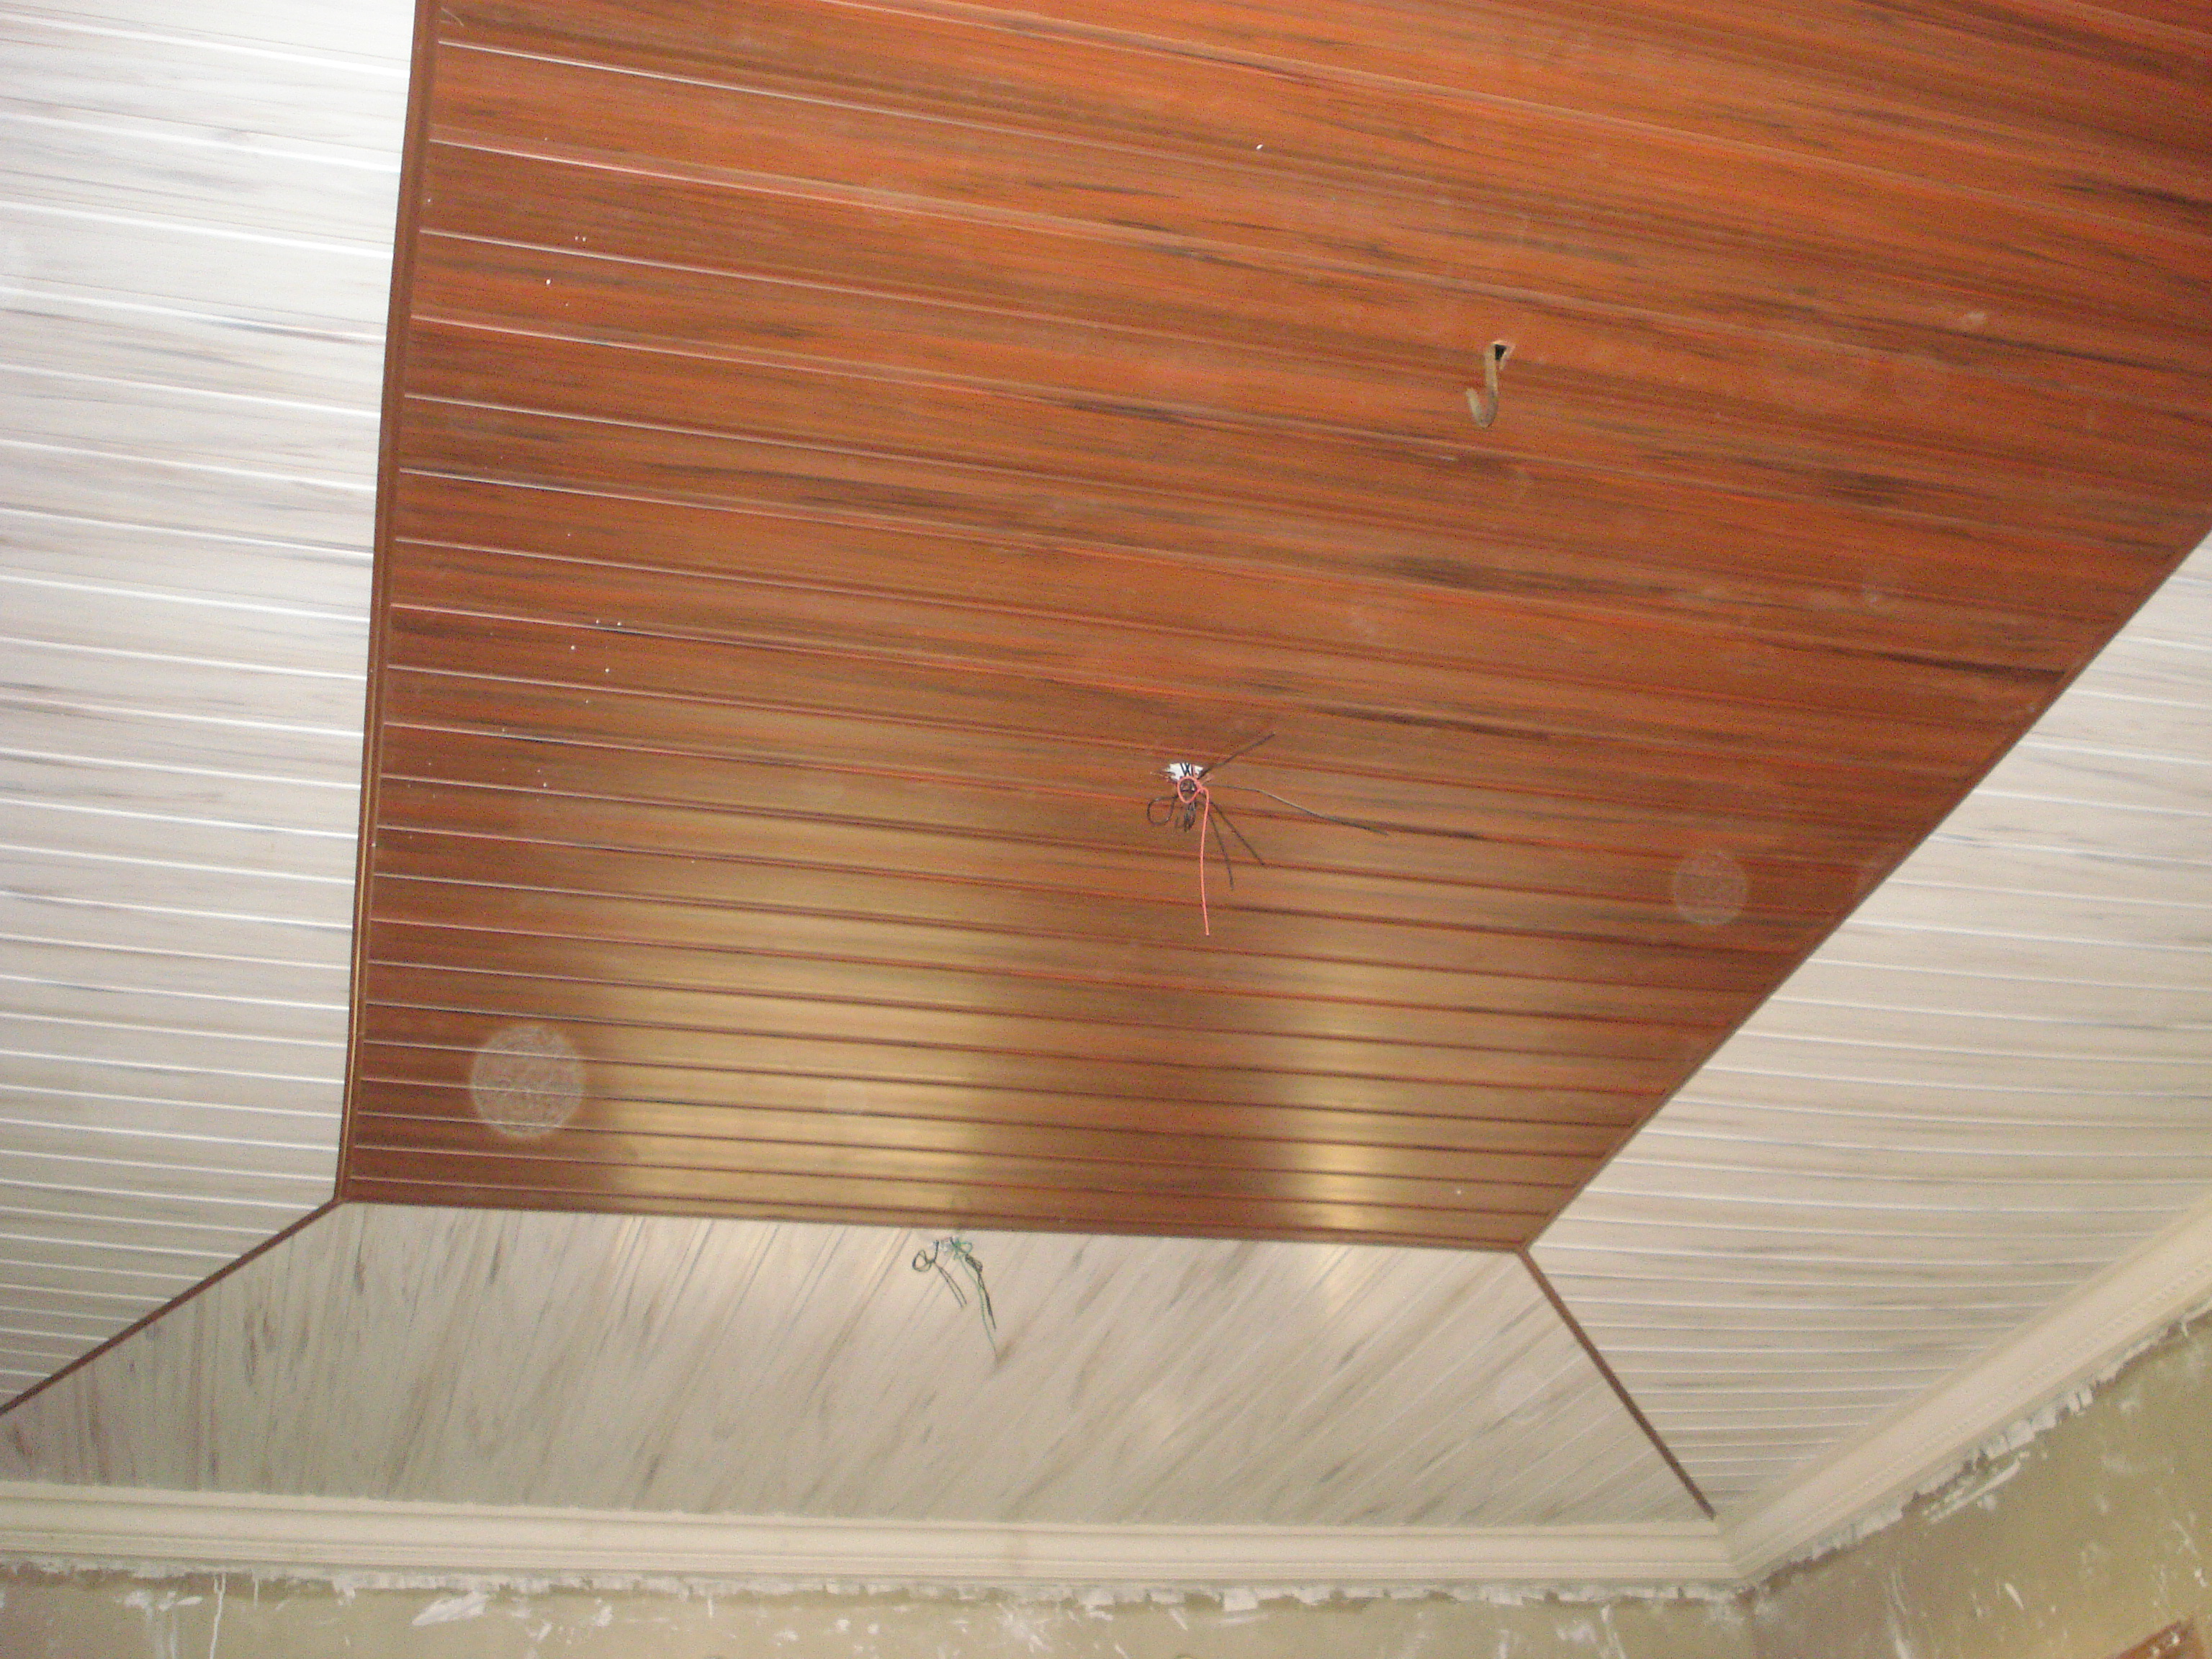 Down Ceiling Design For Room